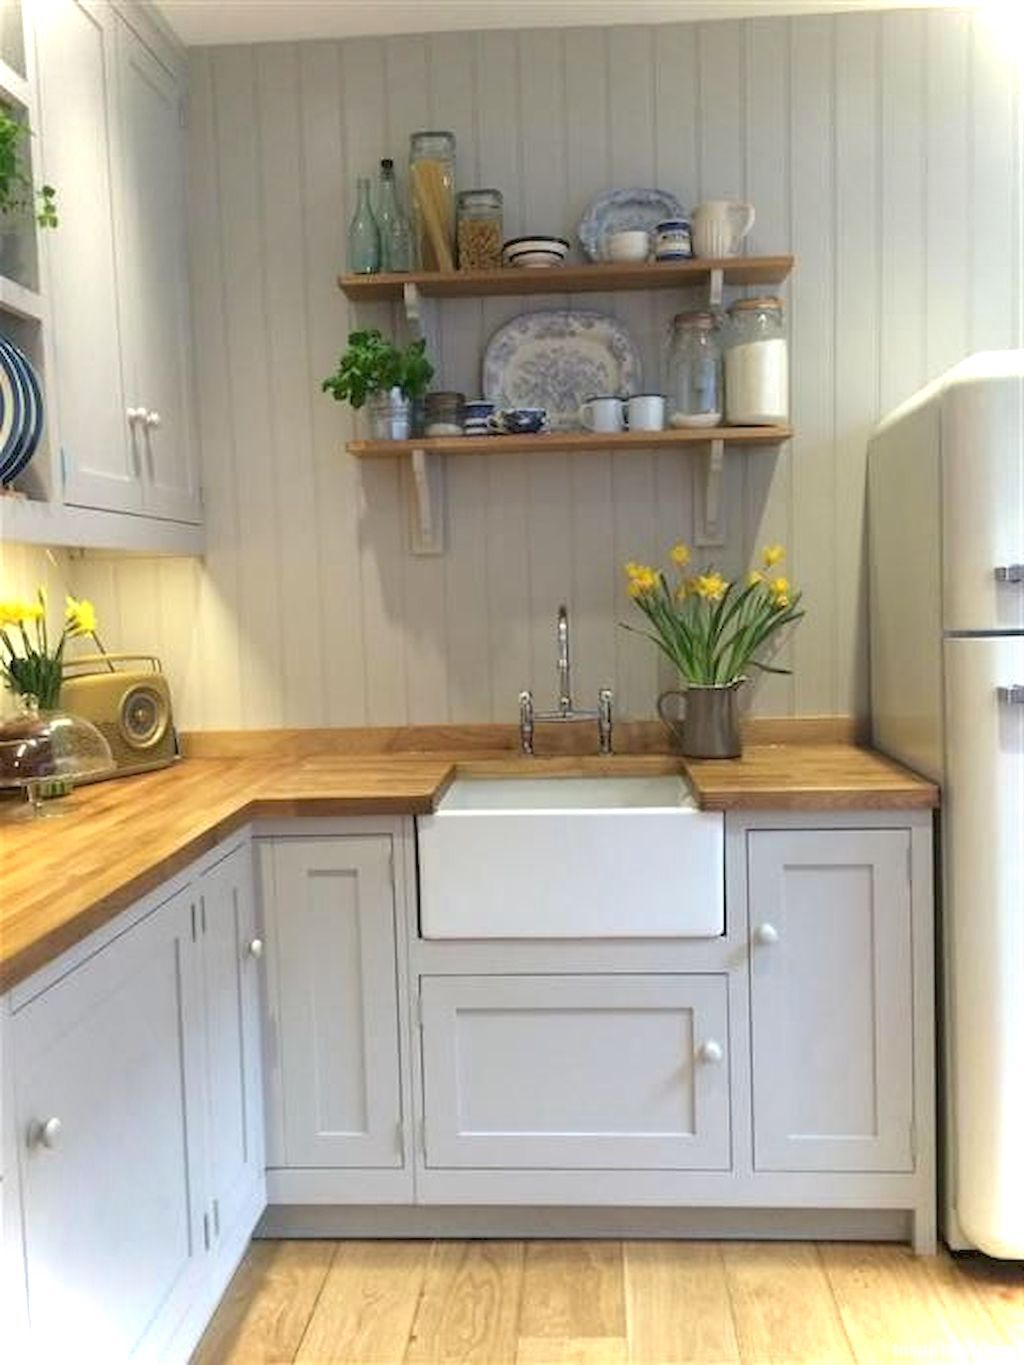 cottage kitchen design. Awesome 55 Genius Small Cottage Kitchen Design Ideas Https://roomaniac.com/ H